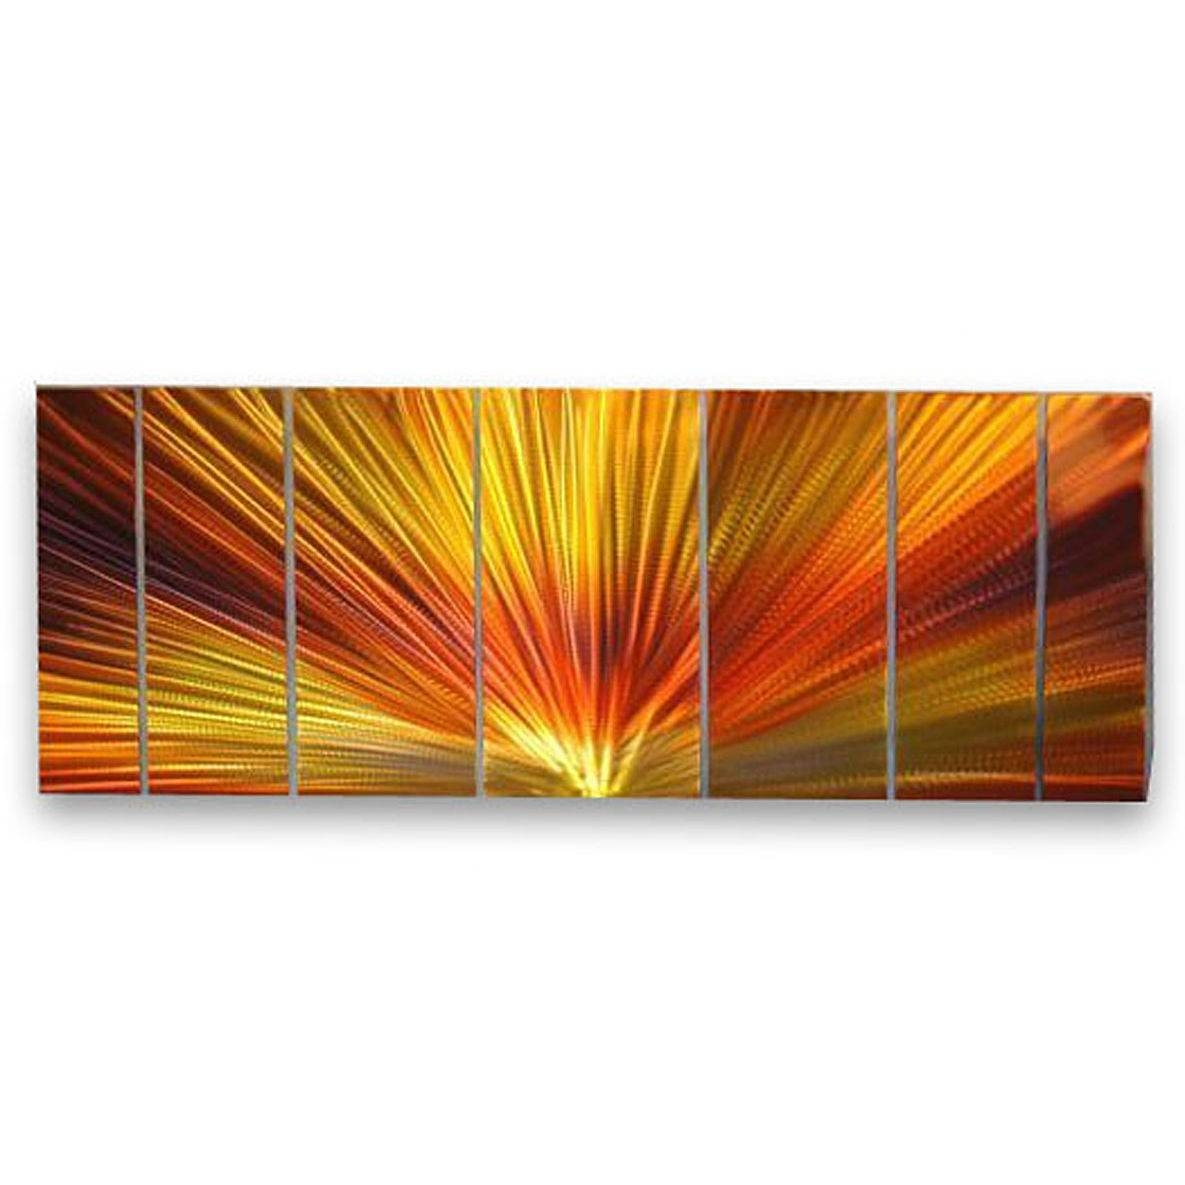 Amazing Design Orange Wall Art Lovely Ideas All My Walls Abstract Within Latest Ash Carl Metal Art (View 4 of 30)